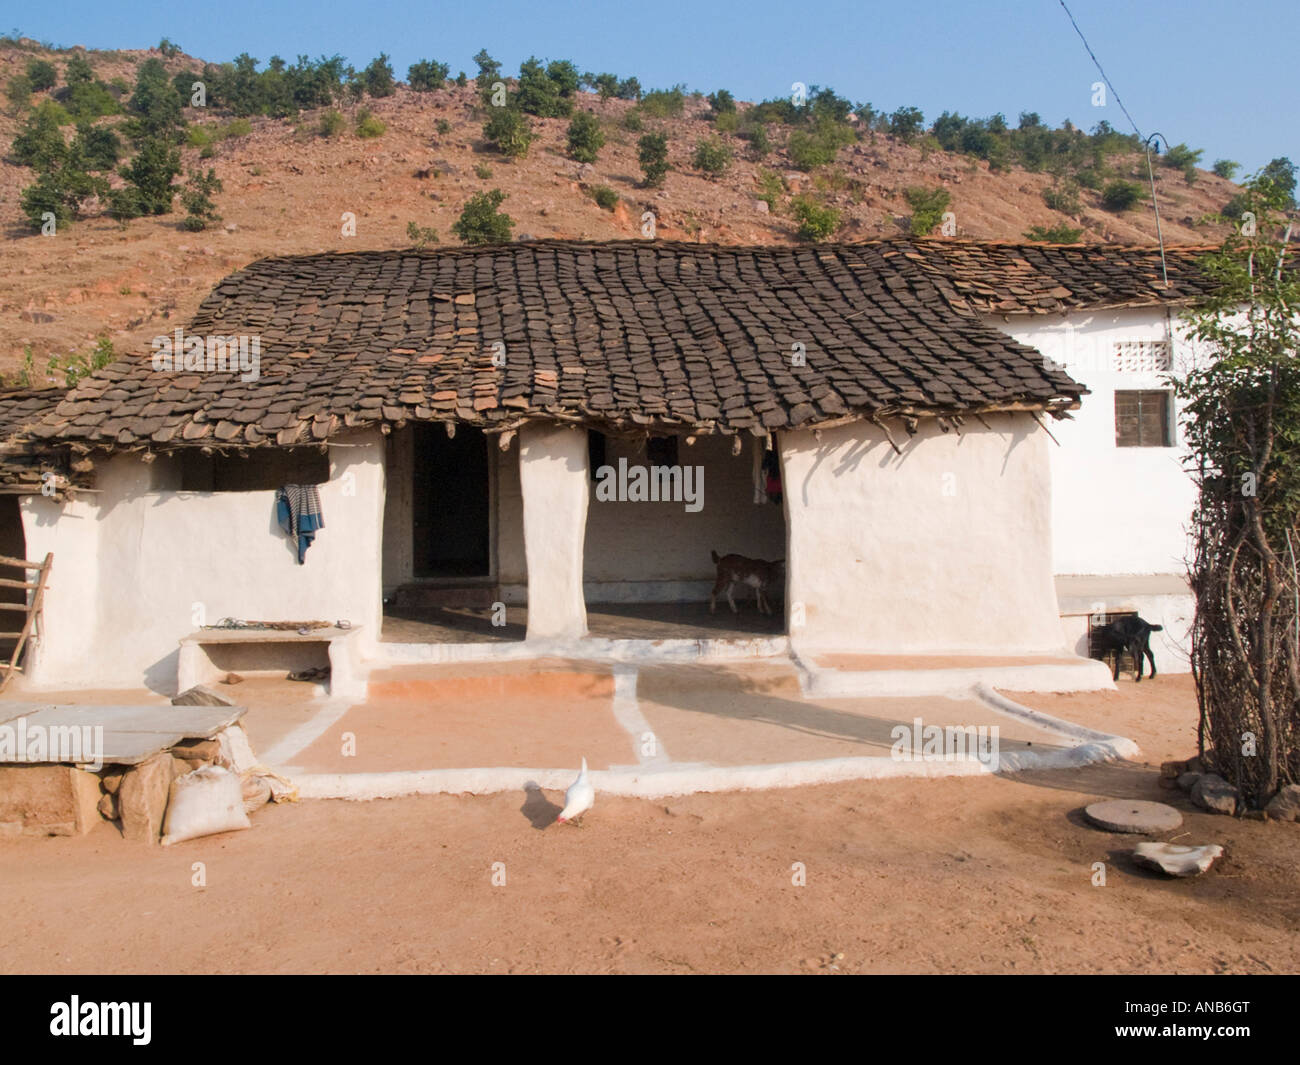 madhya pradesh india asia typical small rural village house with white ANB6GT - 47+ Small House Design For Village In India PNG